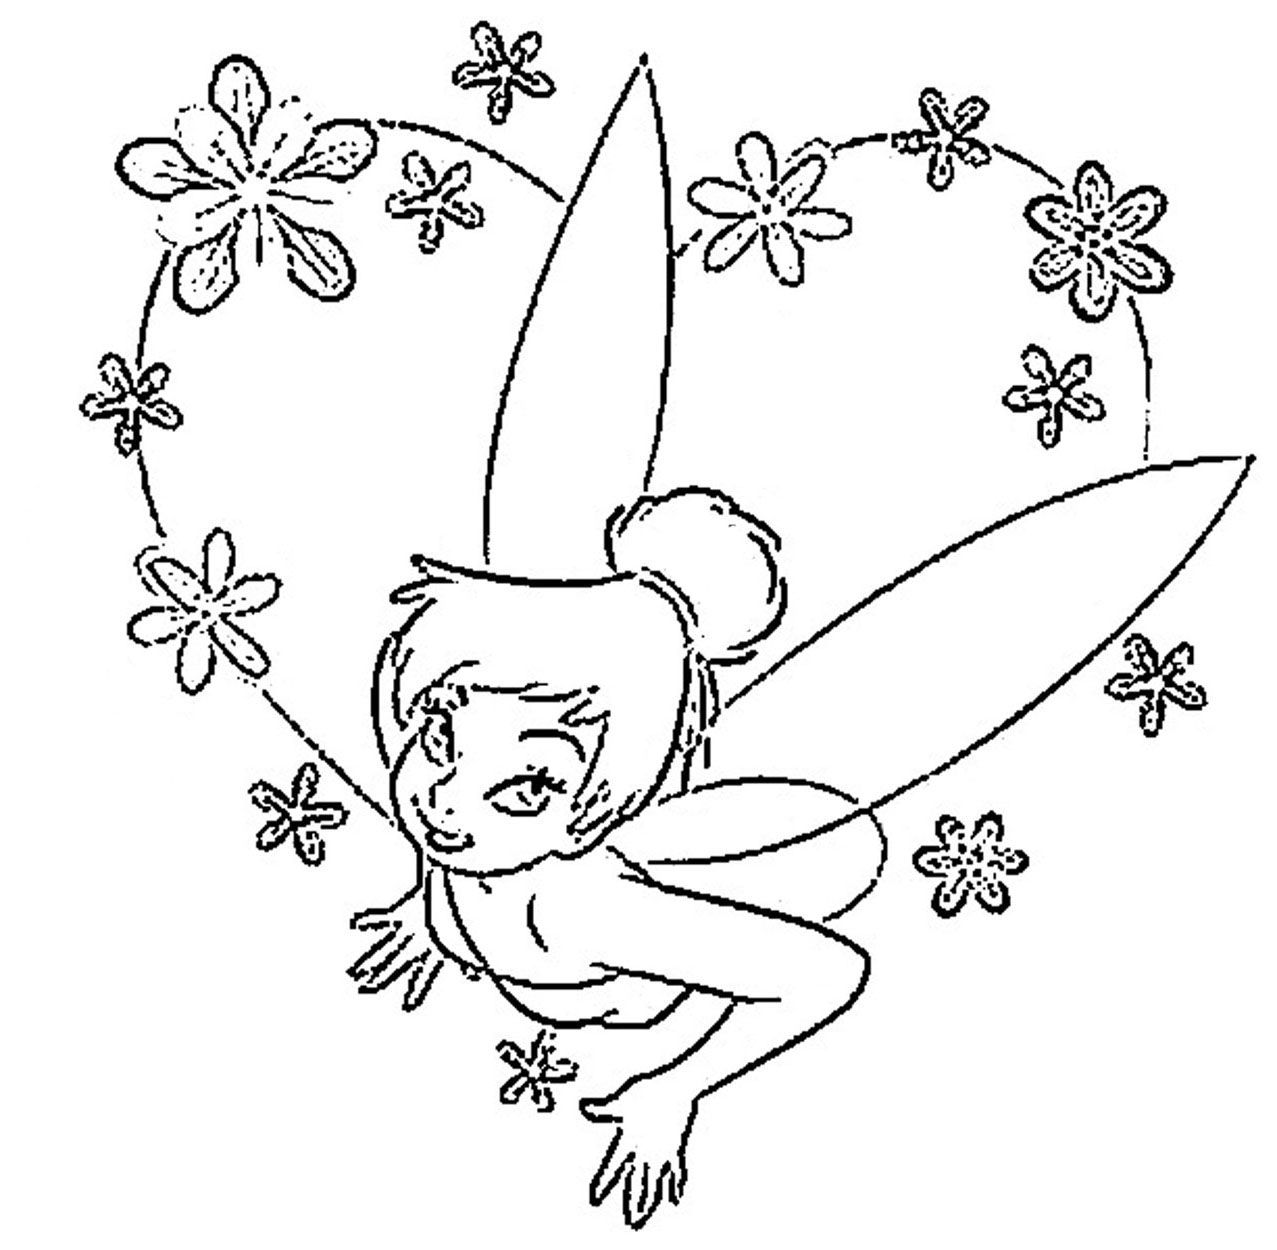 Coloring Tinkerbell Pink Flowers Disney Princess Coloring Pages Tinkerbell Coloring Pages Princess Coloring Pages Free Printable Coloring Pages